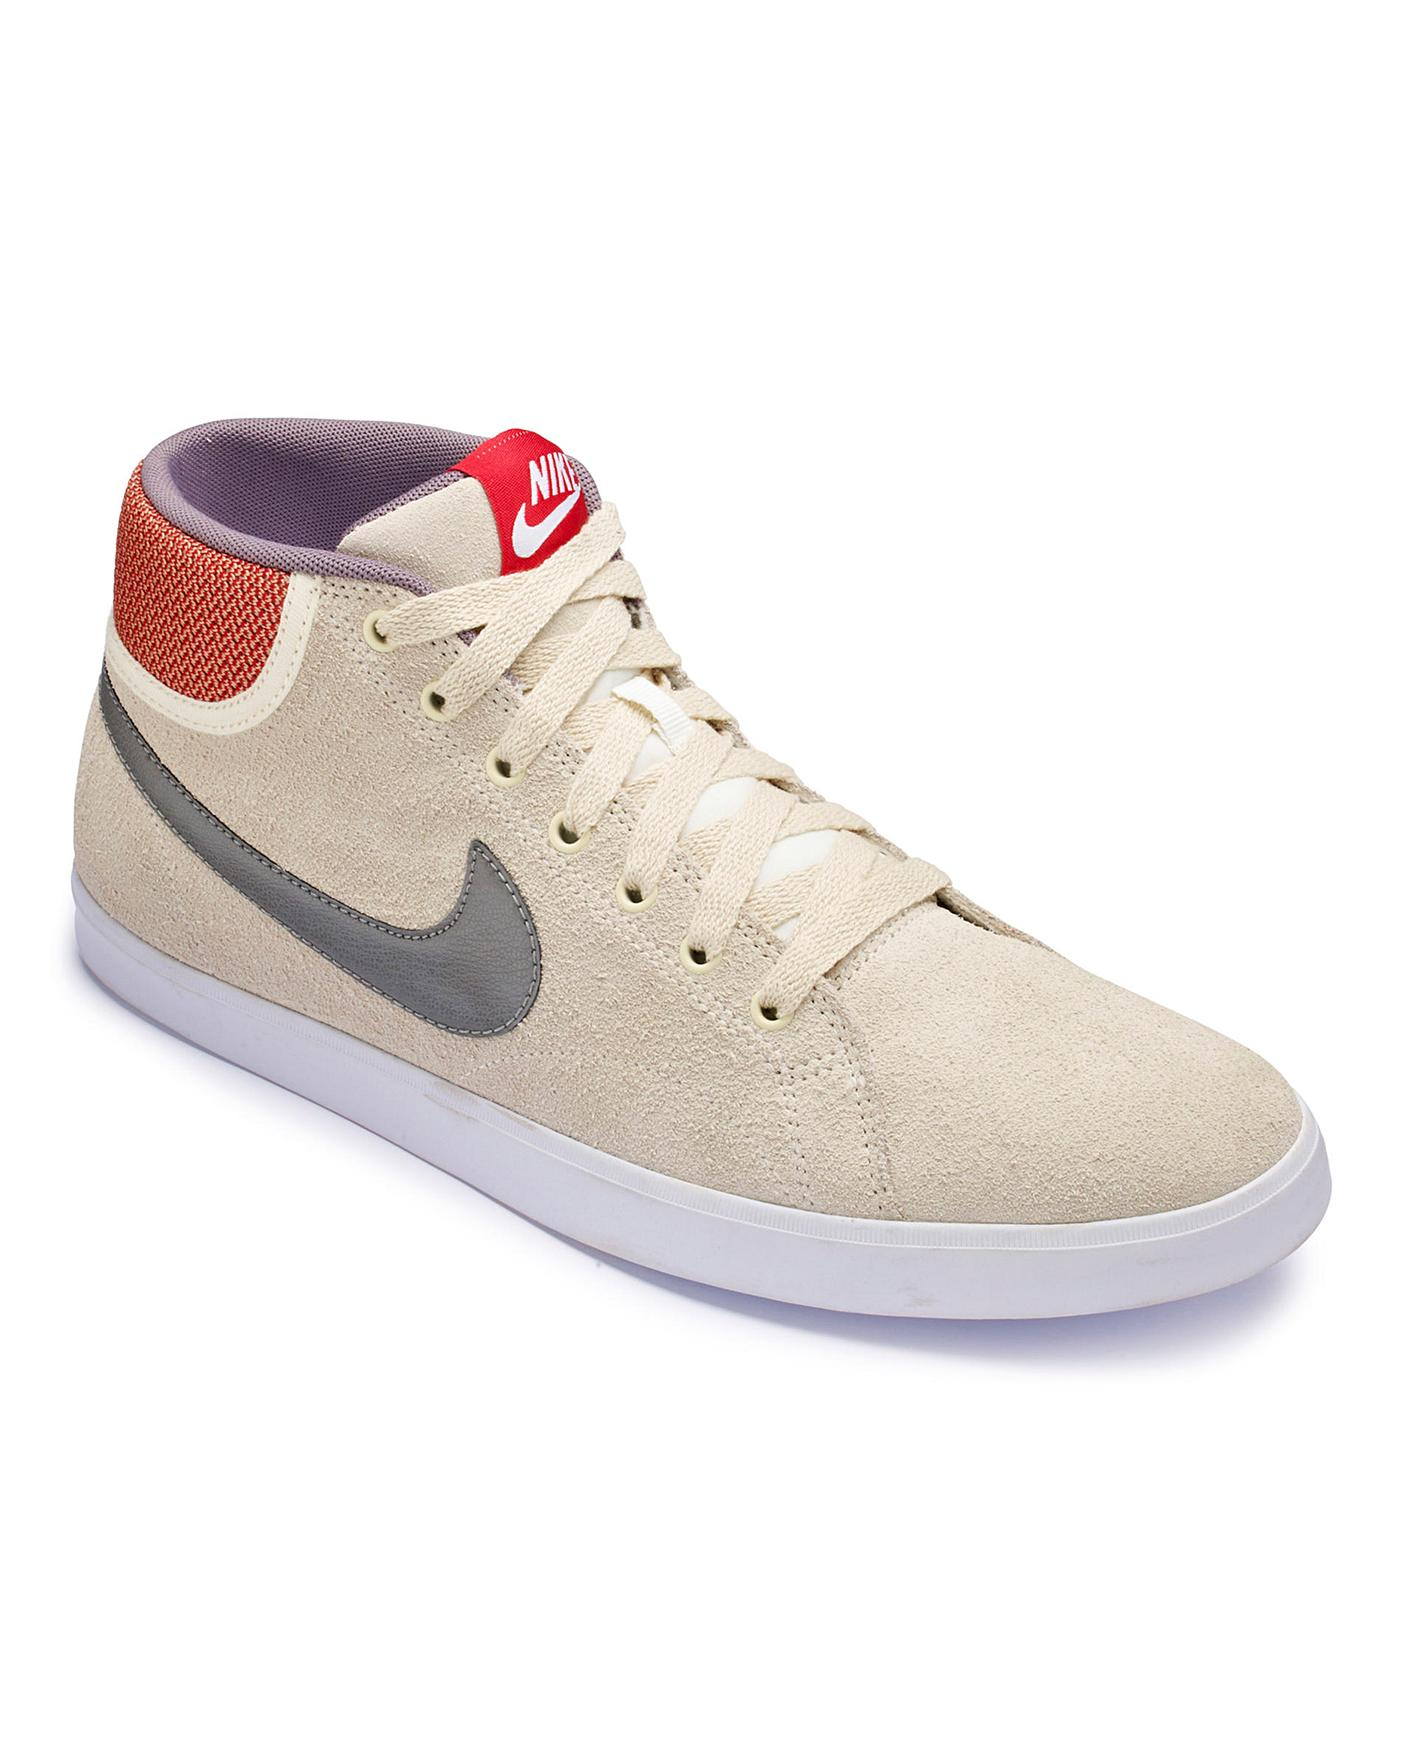 recognized brands 2018 shoes coupon code Nike Eastham Mid Mens Trainers